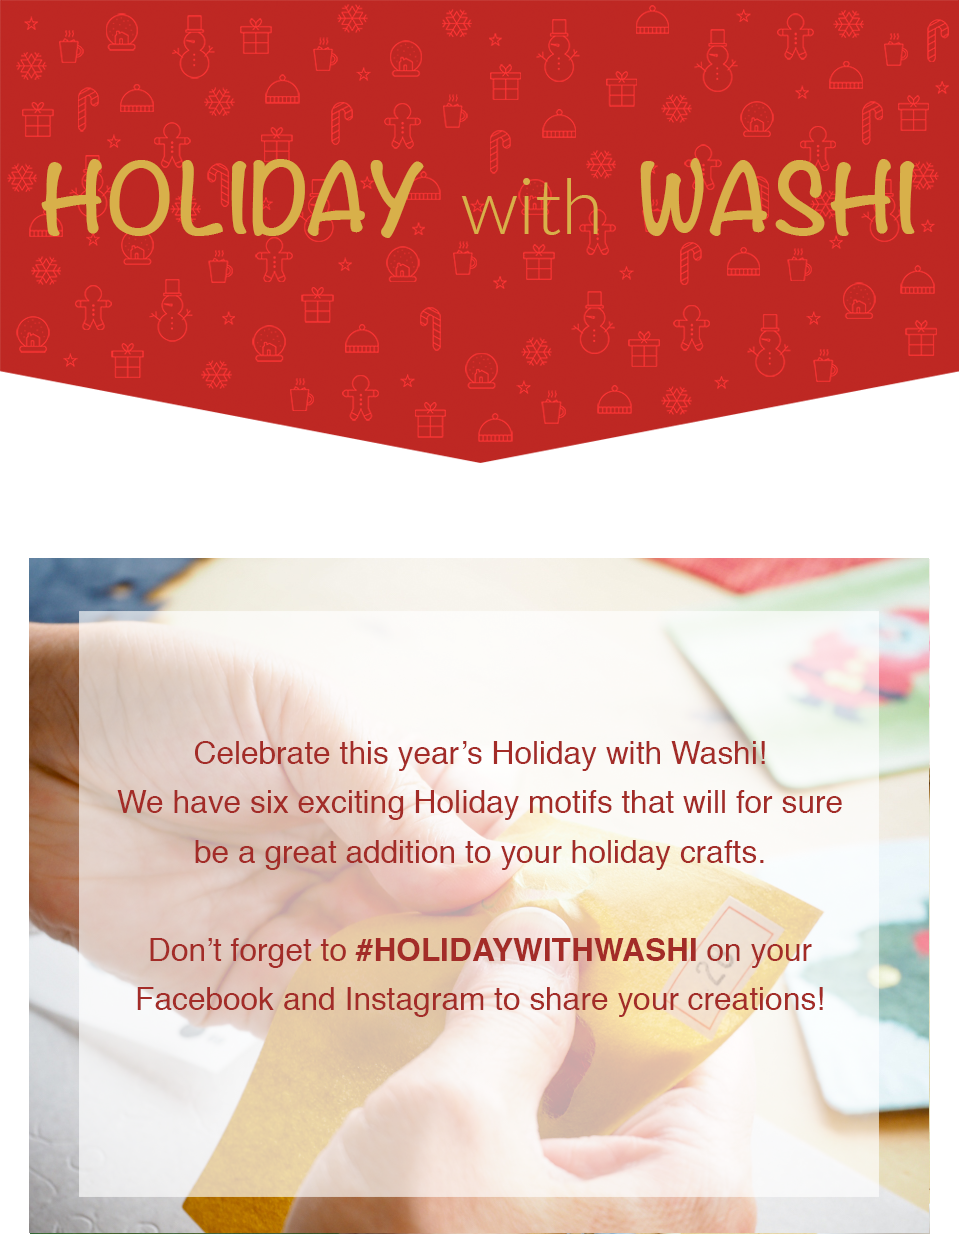 HOLIDAY with WASHI | Celebrate this year's Holiday with Washi! We have six exciting Holiday motifs that will for sure be a great addition to your holiday crafts. Don't forget to #HOLIDAYWITHWASHI on your Facebook and Instagram to share your creations!